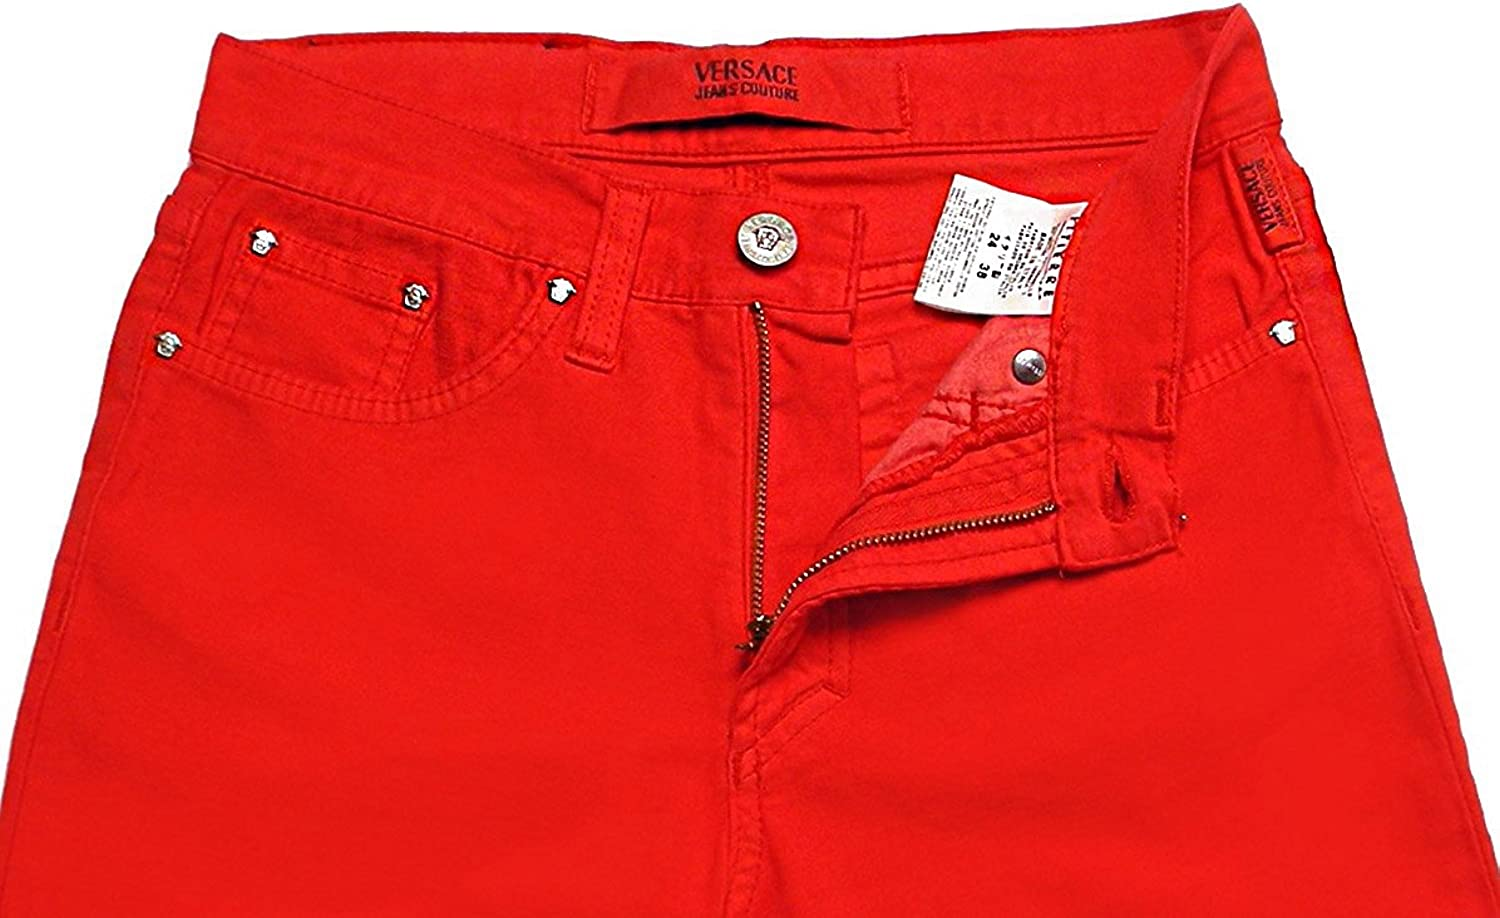 Versace Jeans Couture Red Women S Jeans Made In Italy 24 38 At Amazon Women S Jeans Store